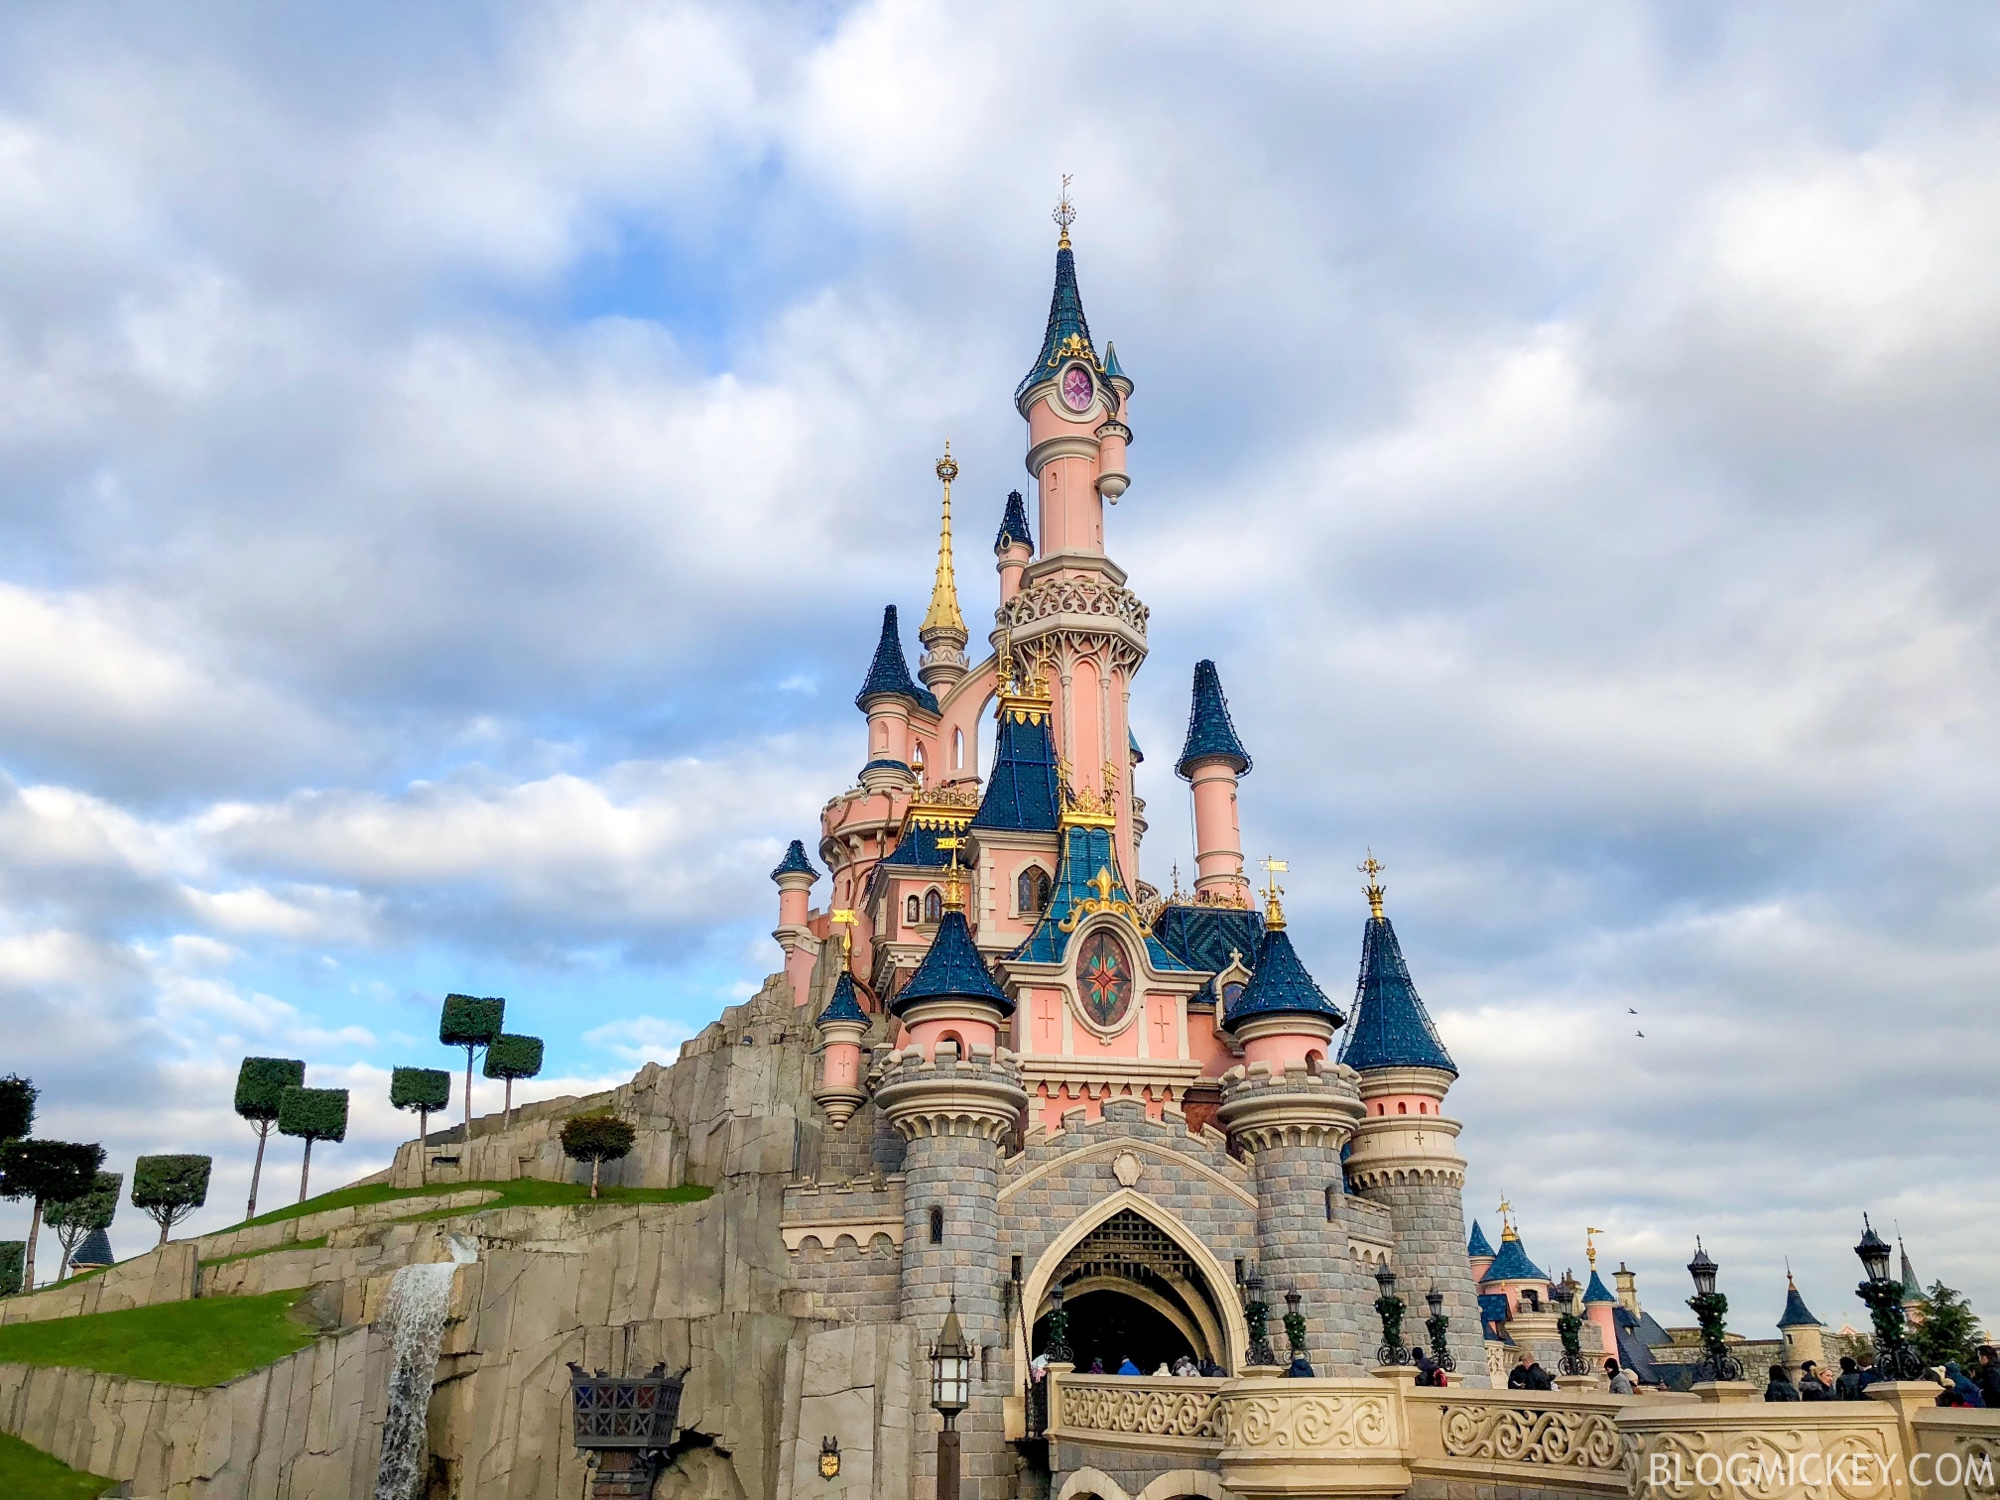 Disneyland Paris Extends Annual Passes Due Coronavirus Covid 19 Closure